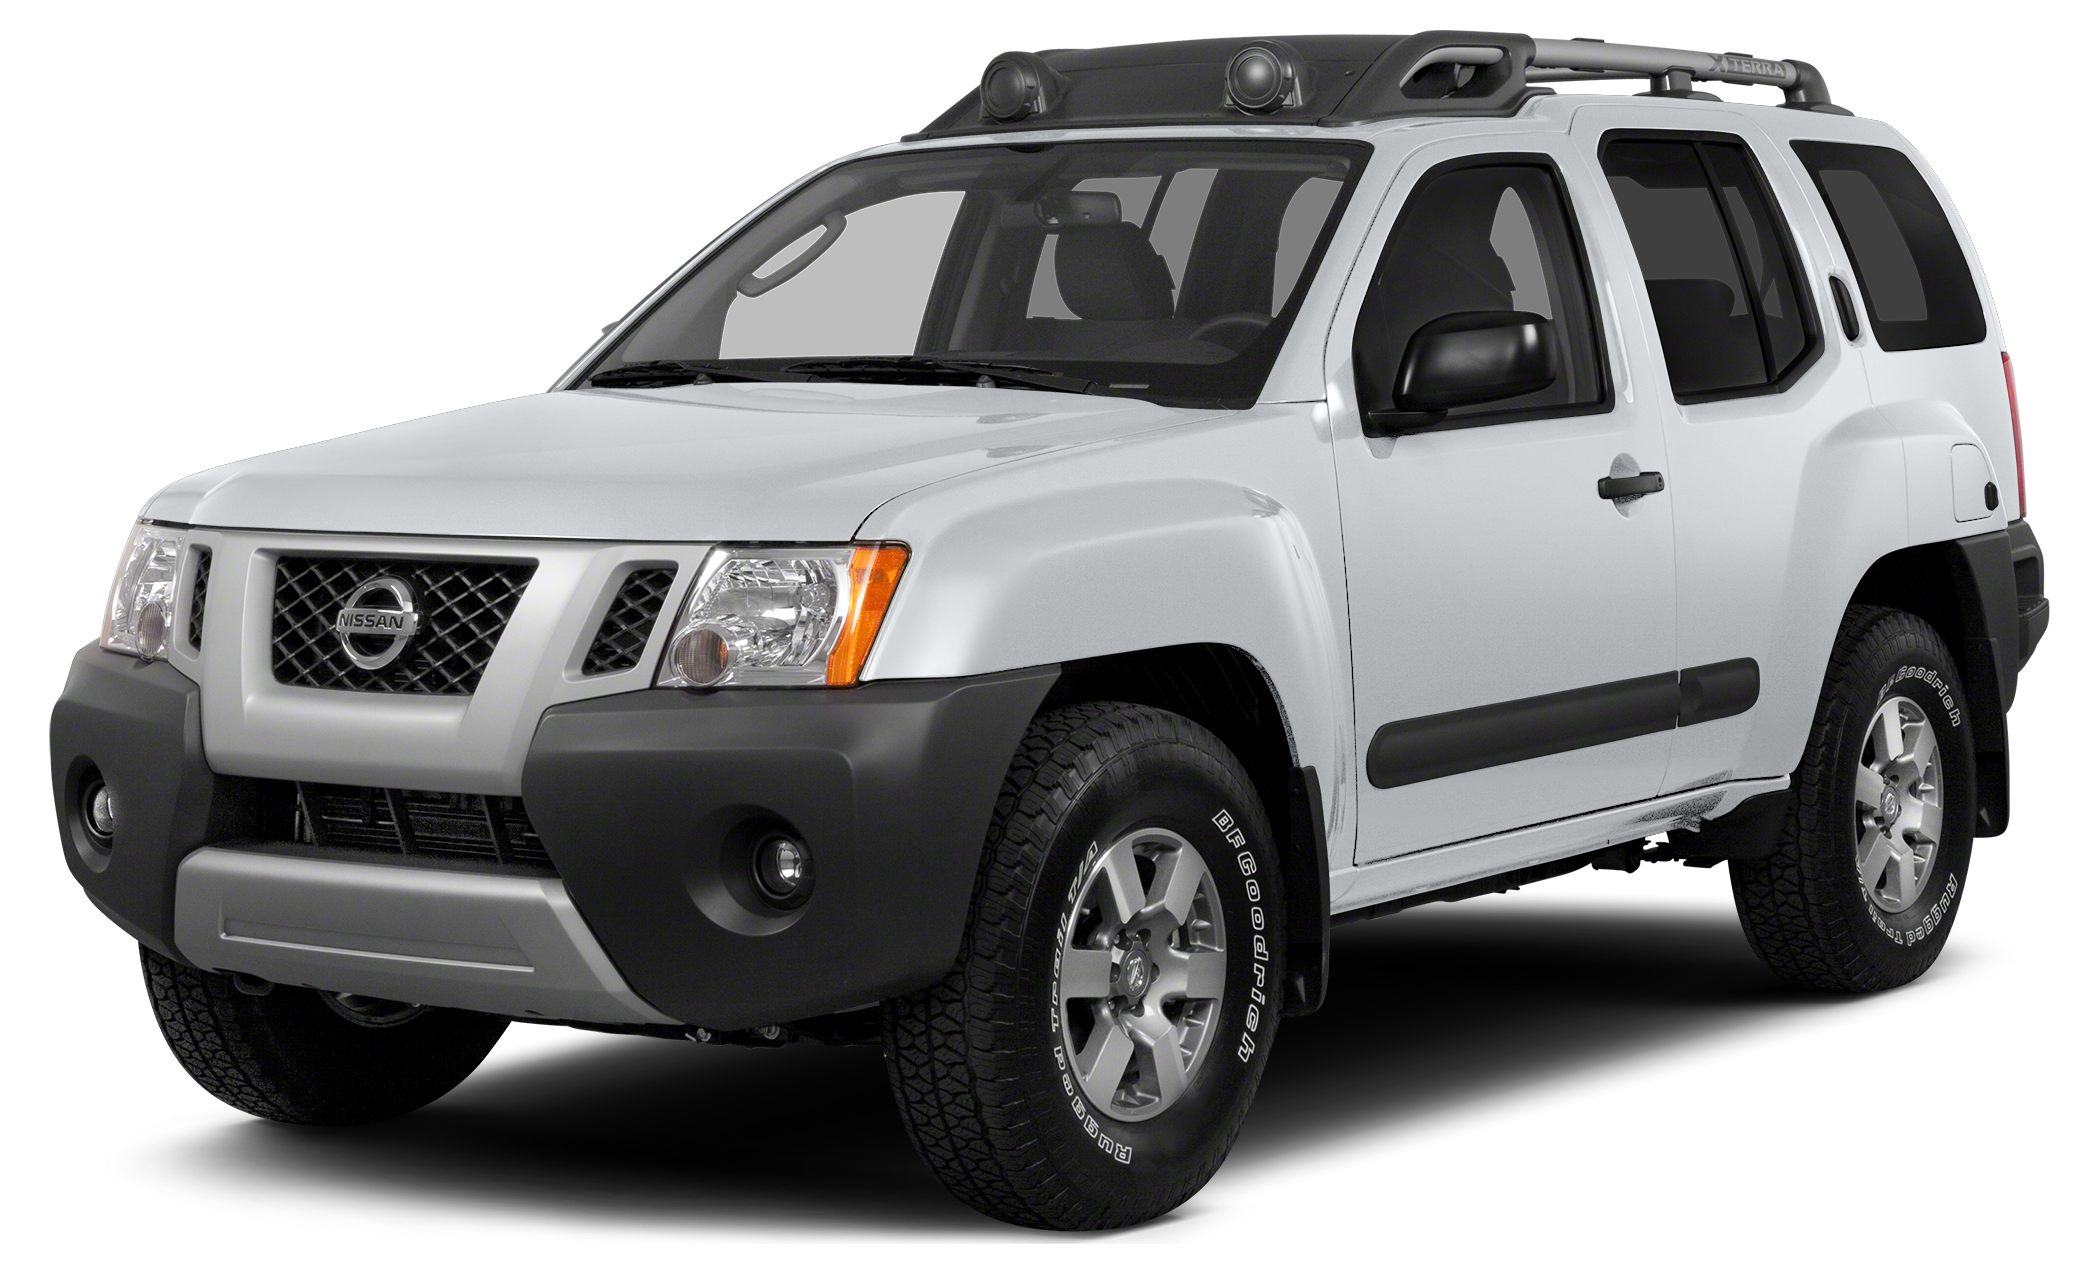 2013 Nissan Xterra X HARD TO FIND XTERRA X ONLY 1 PREVIOUS OWNER THAT TOOK REALLY GREAT CARE OF